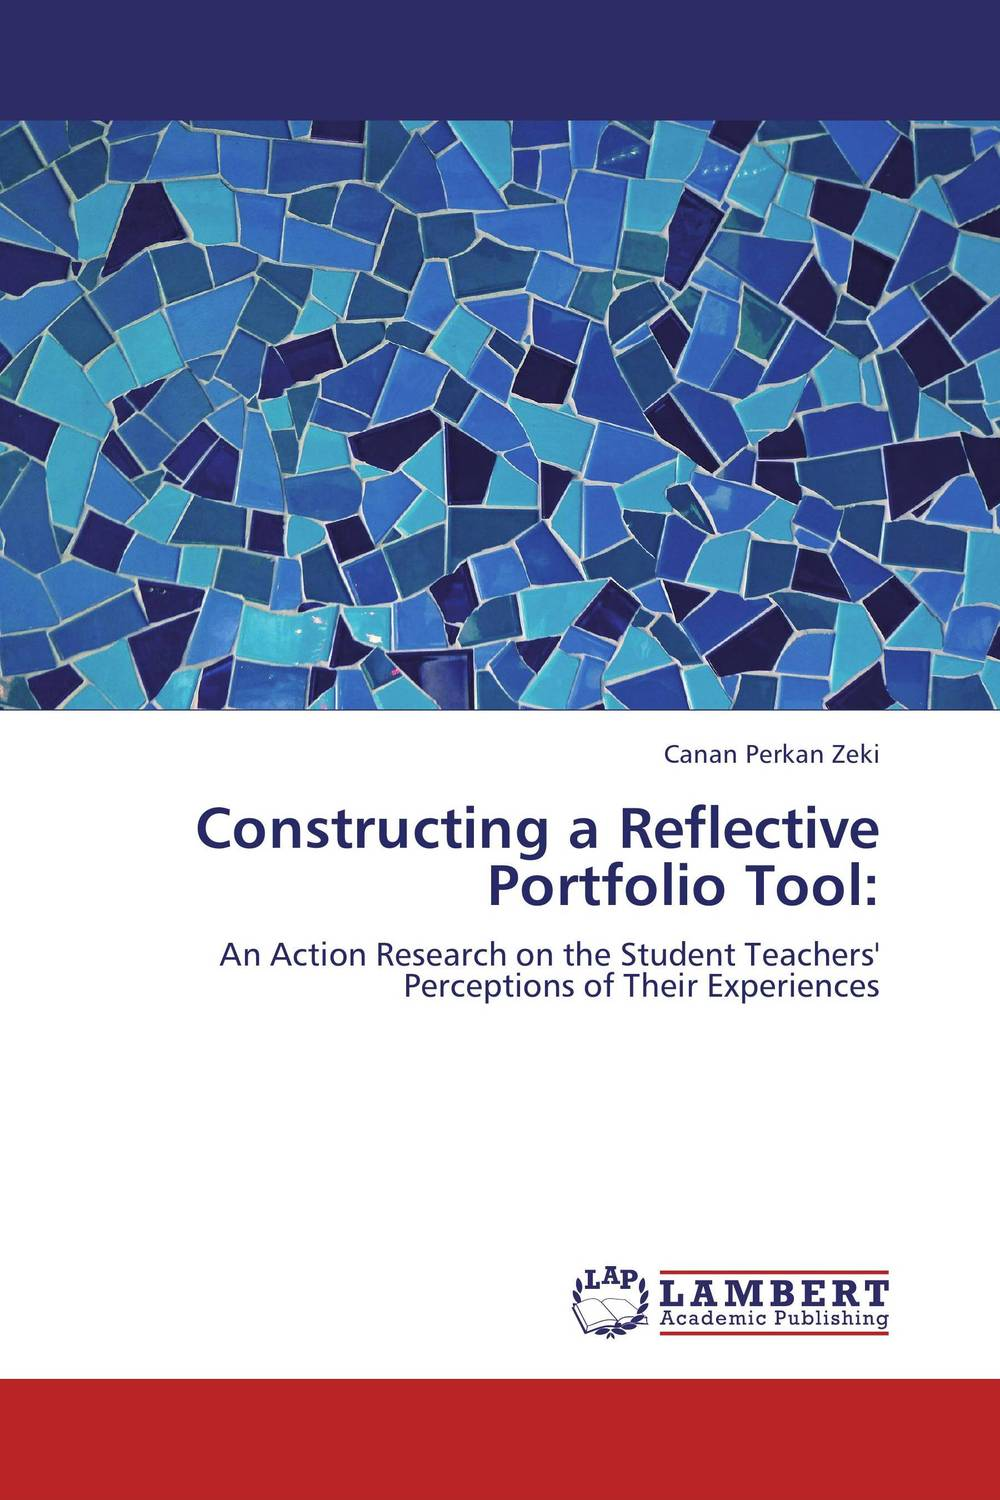 Constructing a Reflective Portfolio Tool: reflective approach to education